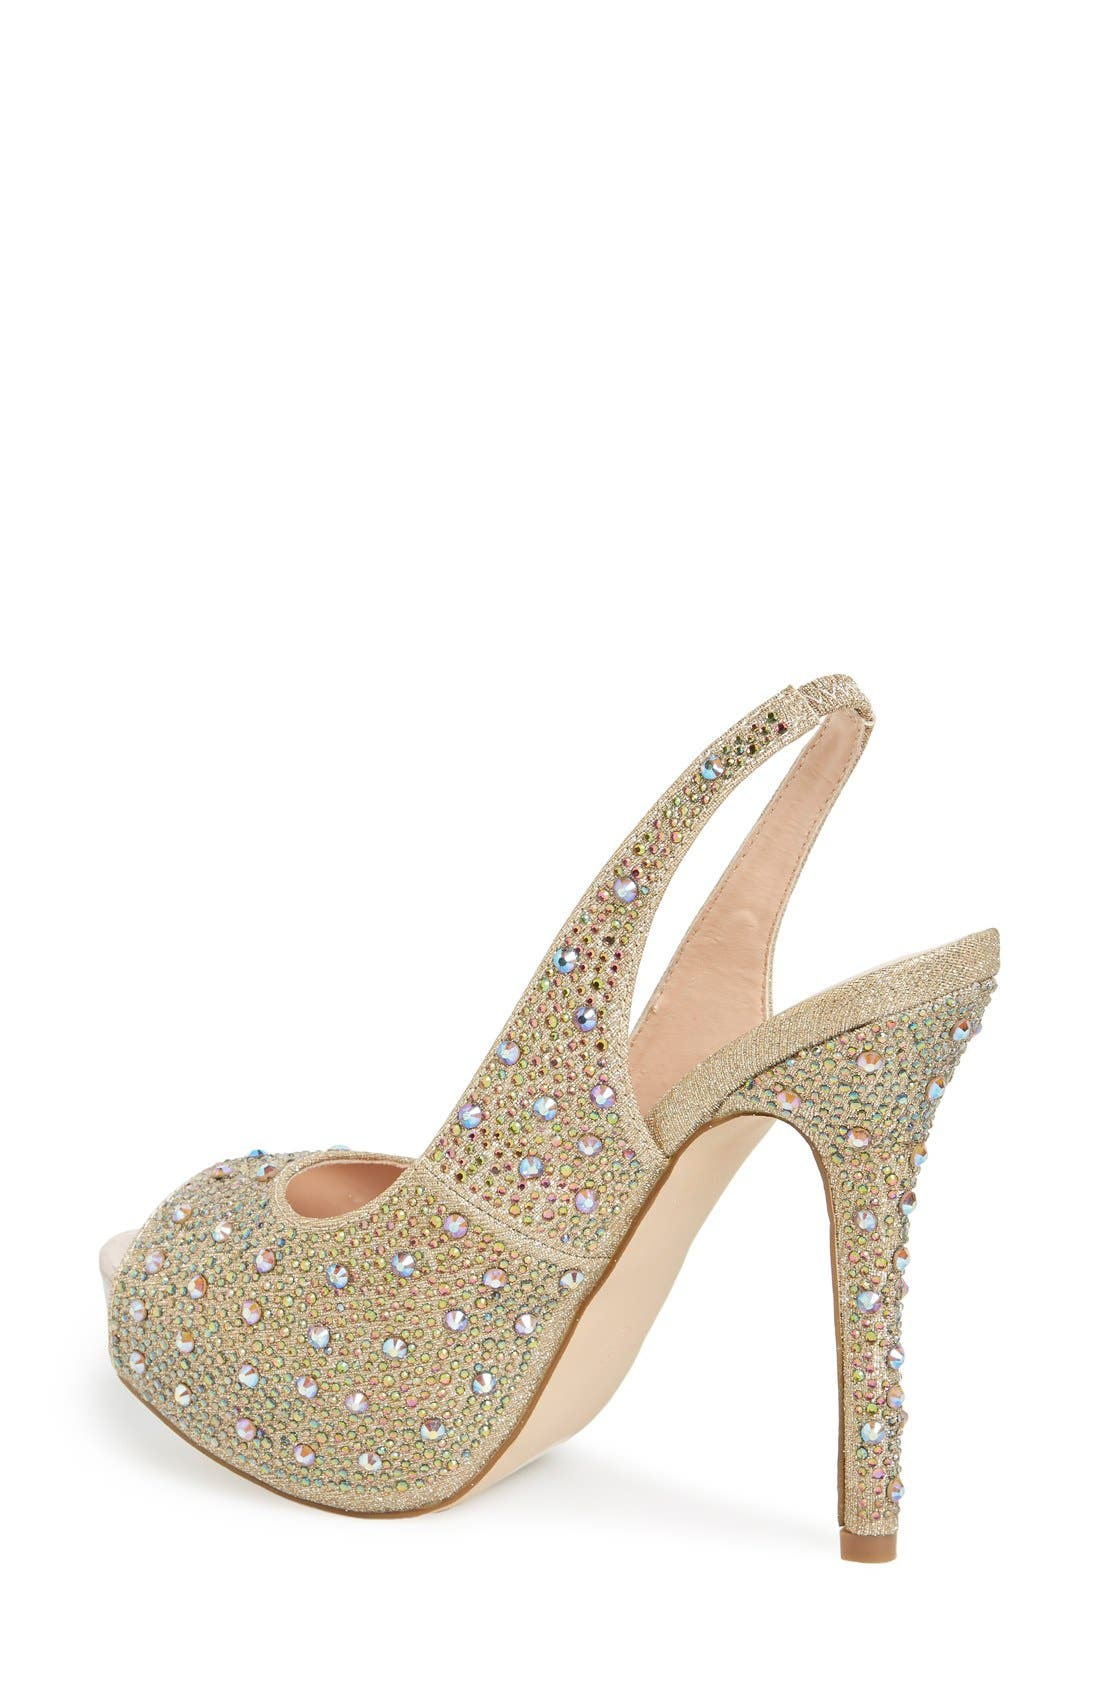 Alternate Image 2  - Lauren Lorraine 'Candy' Crystal Slingback Pump (Women)